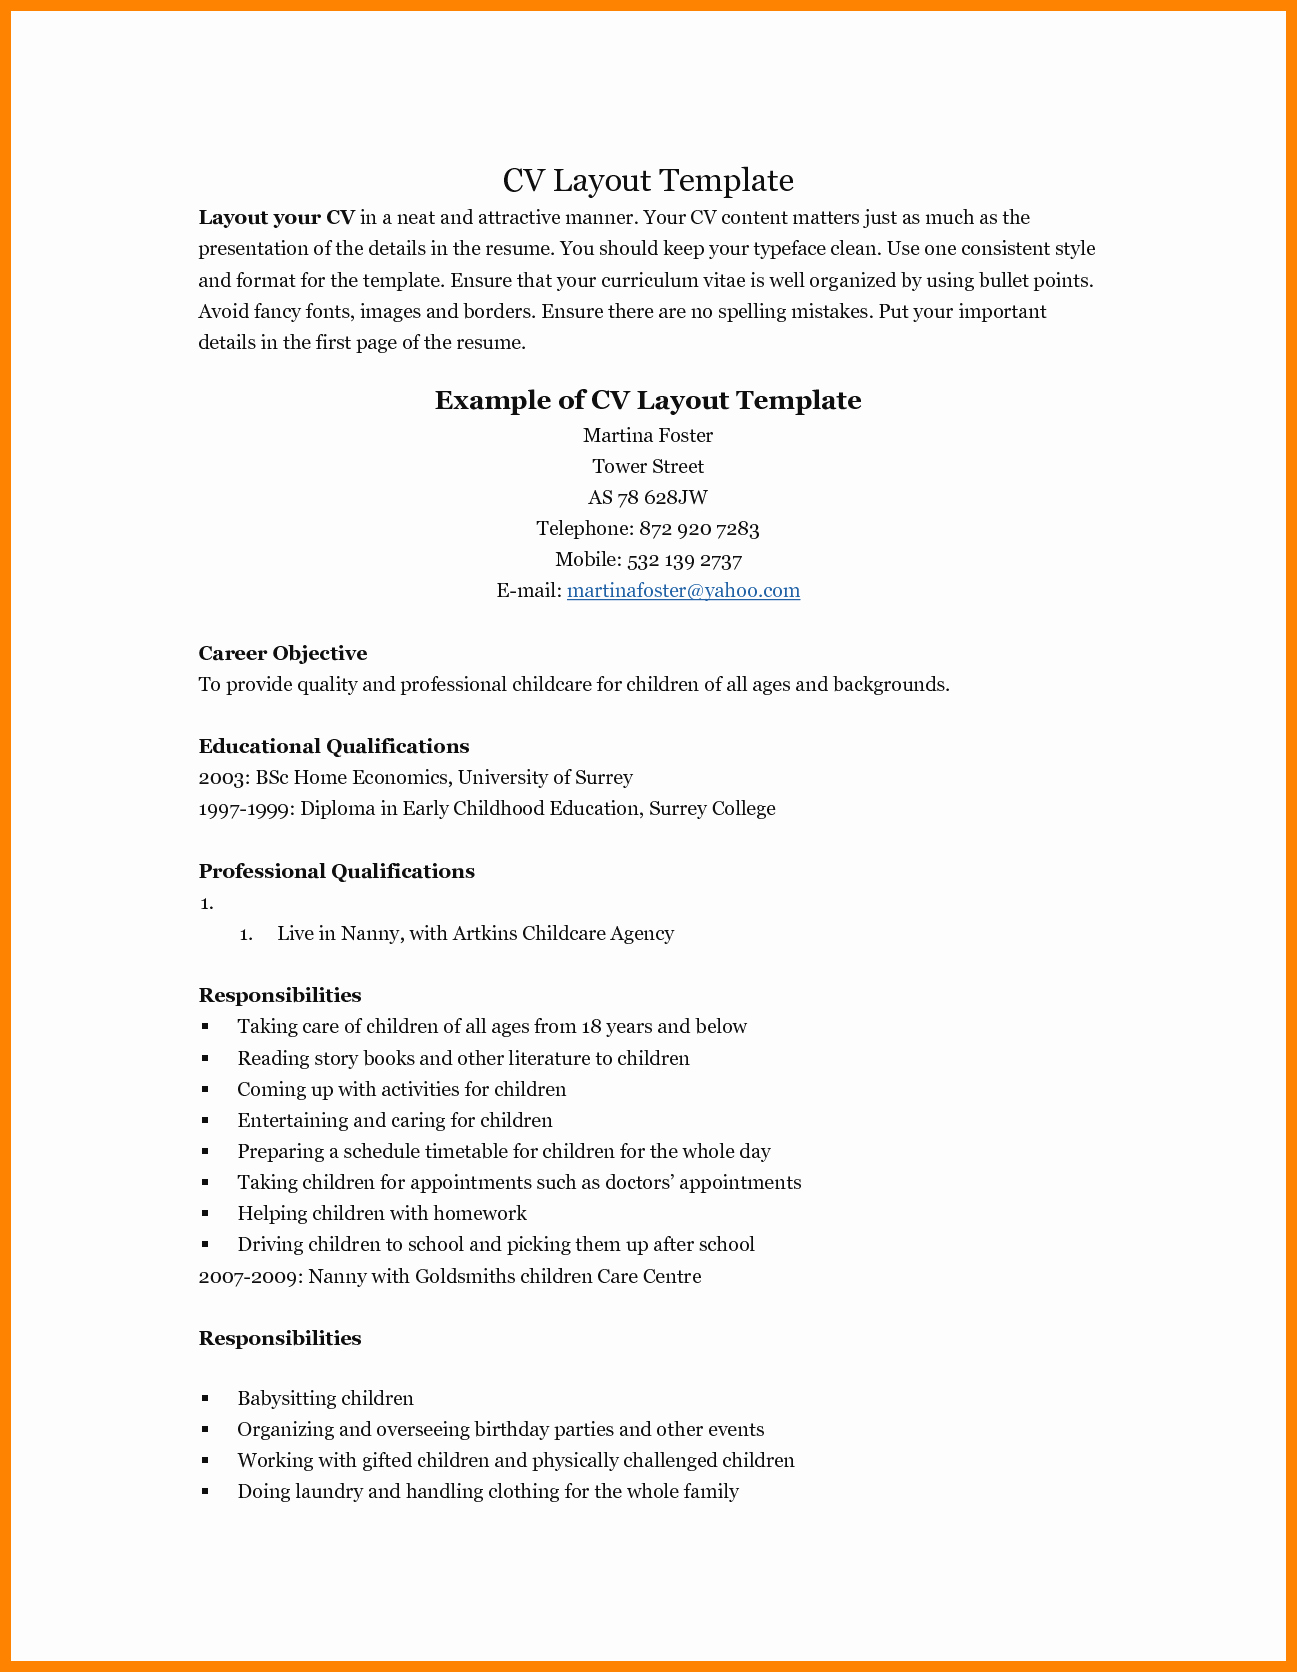 Resume Templates for Teens Fresh 5 Resume Example for Teenagers